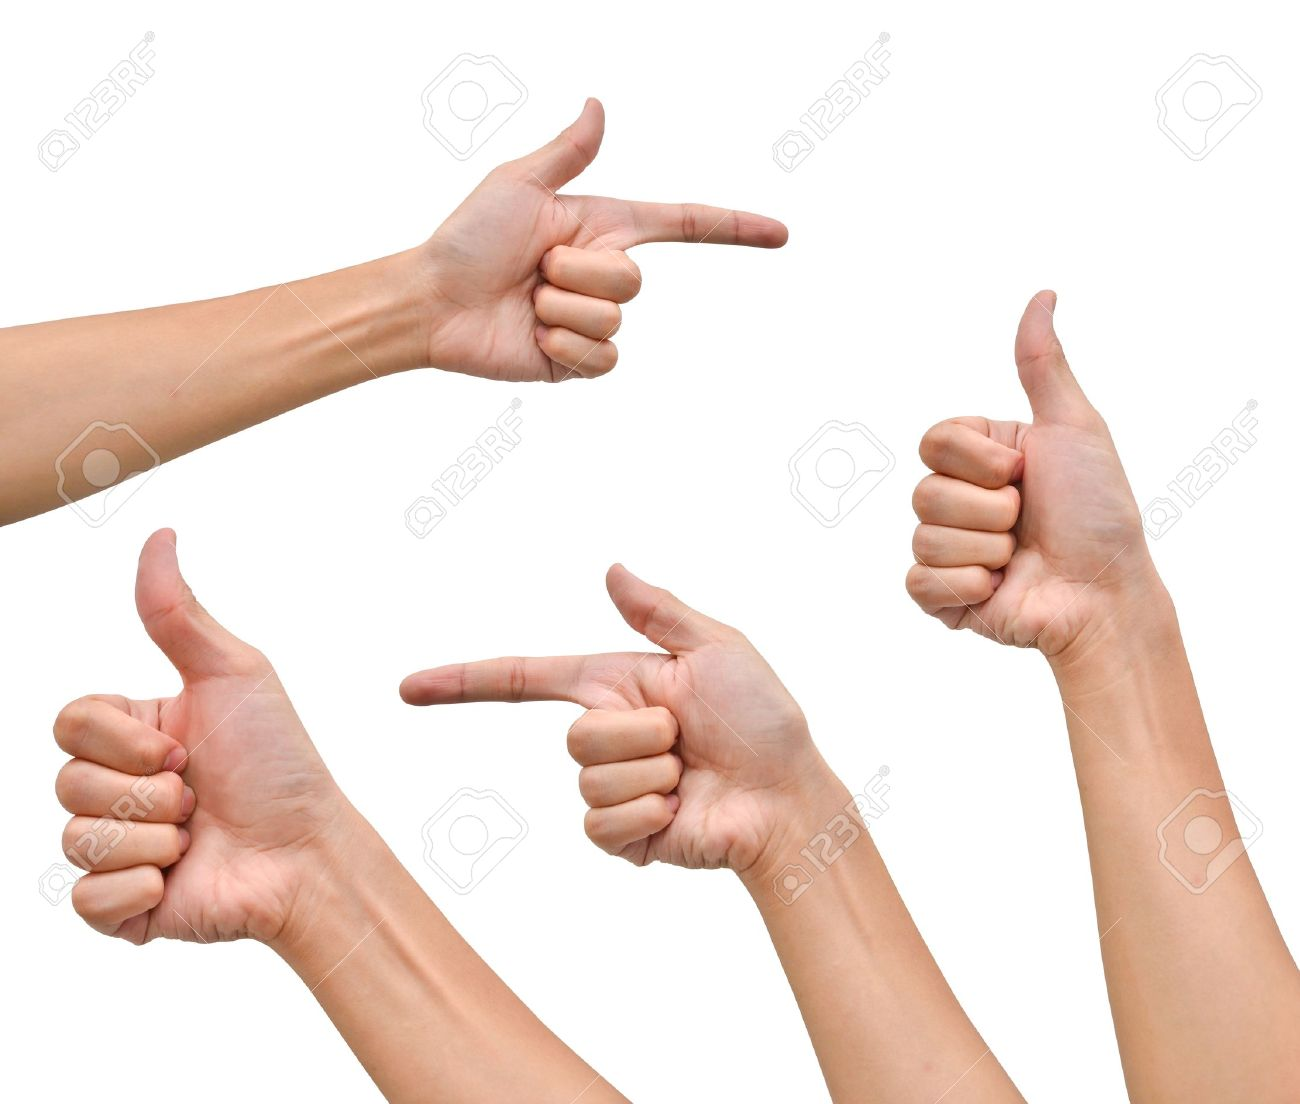 variety of hands in different poses on white background stock photo